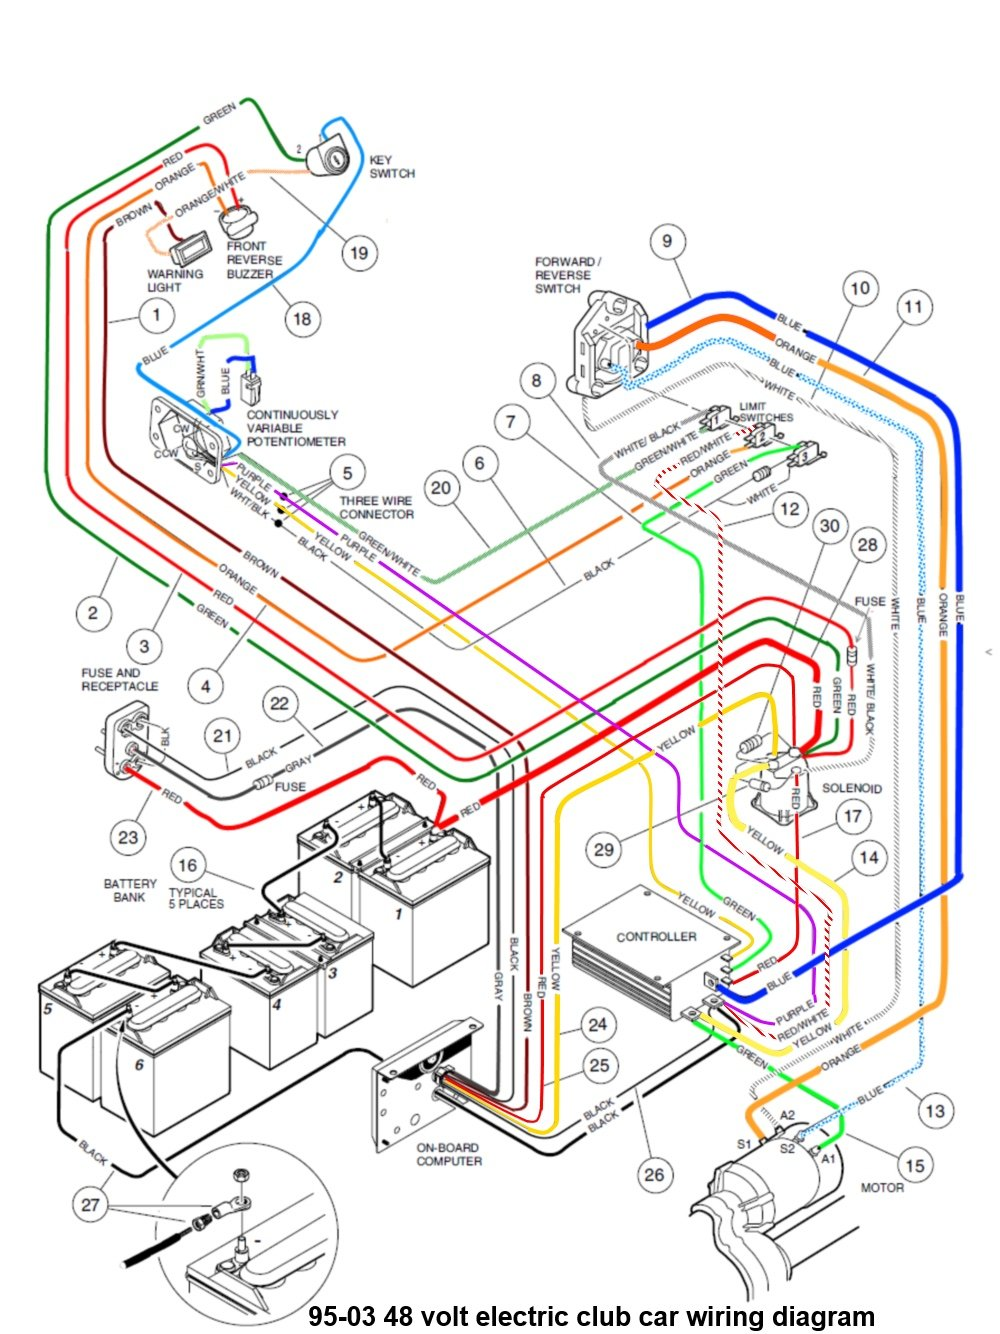 club car wiring diagram 48 volt dc receptacle club car wiring diagram 48 volt club car top speed doesn't seem right - page 2